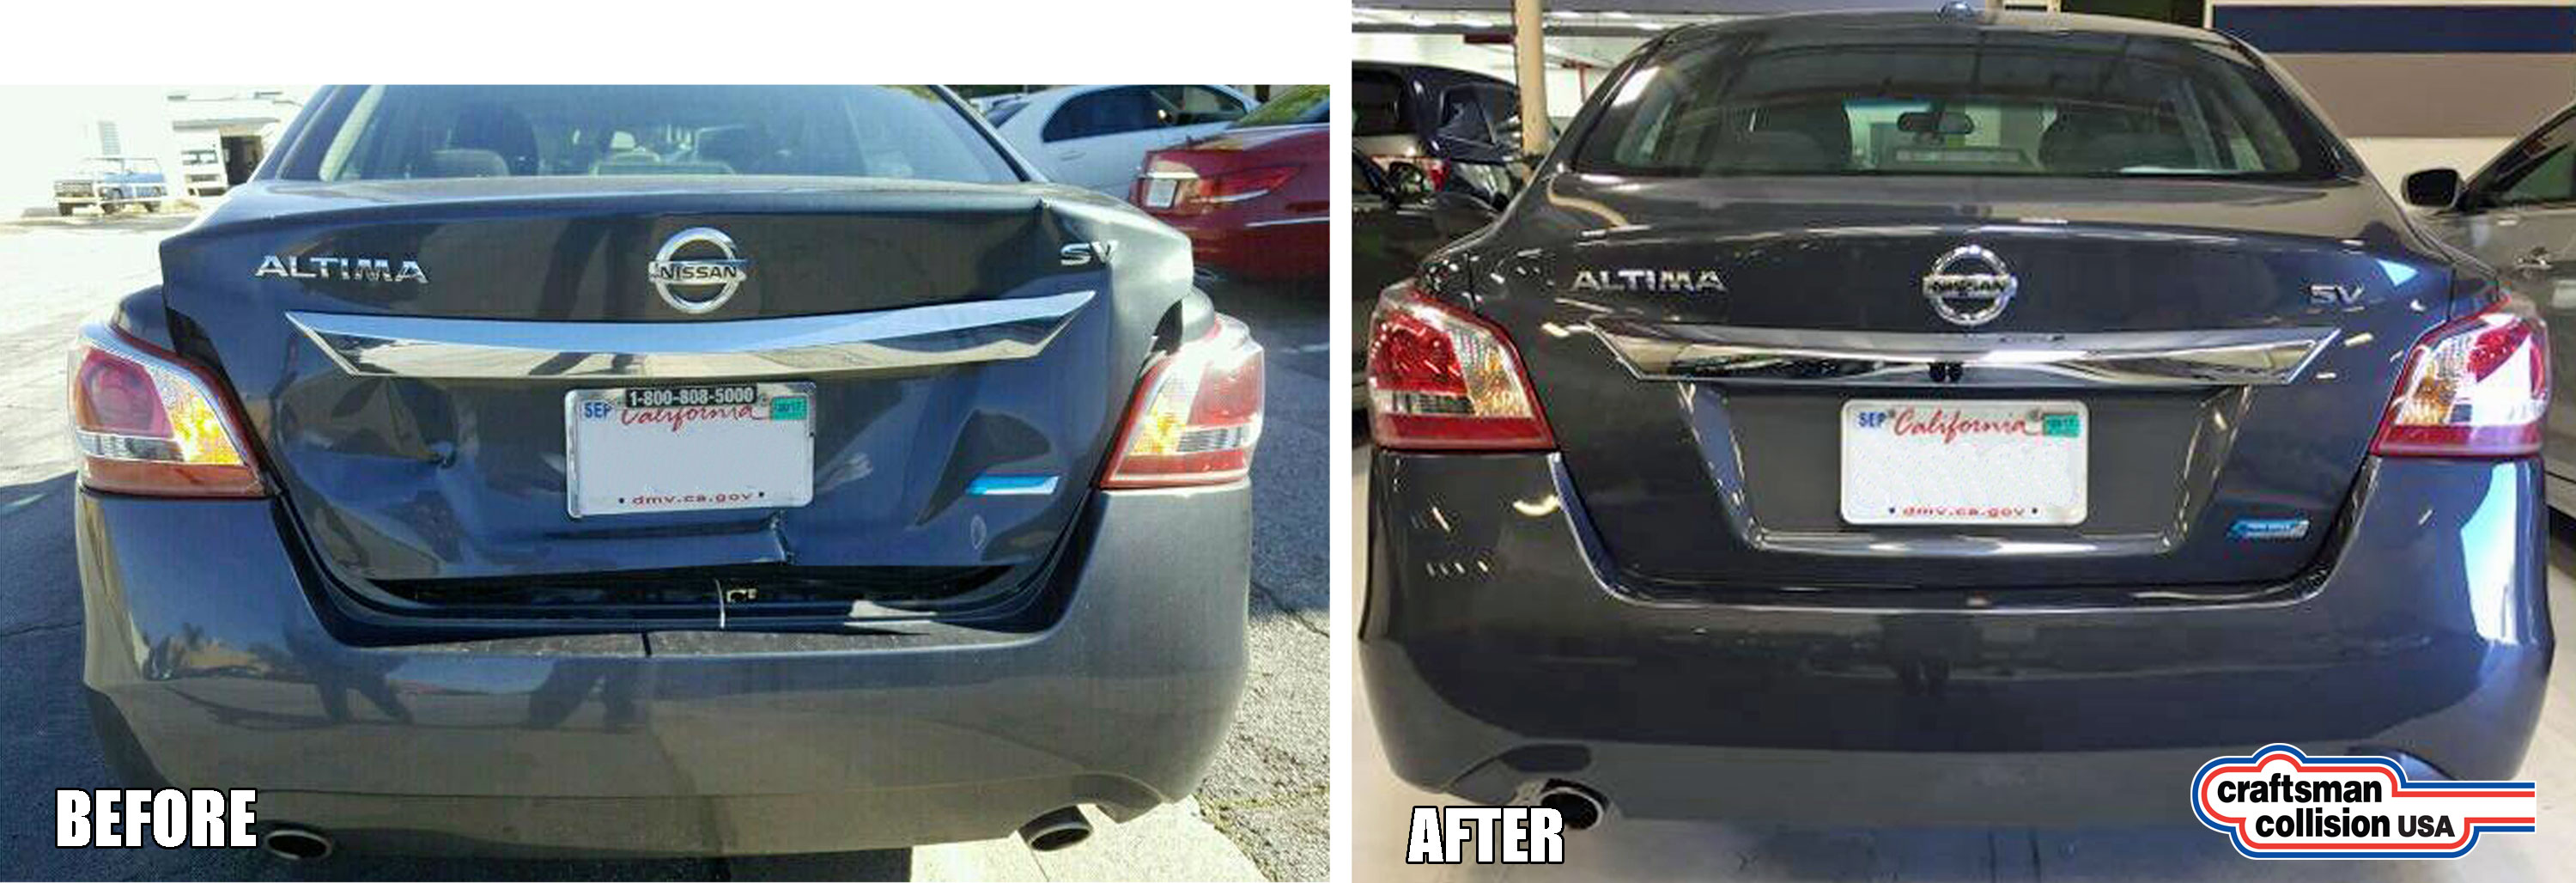 Nissan Altima auto body repairs